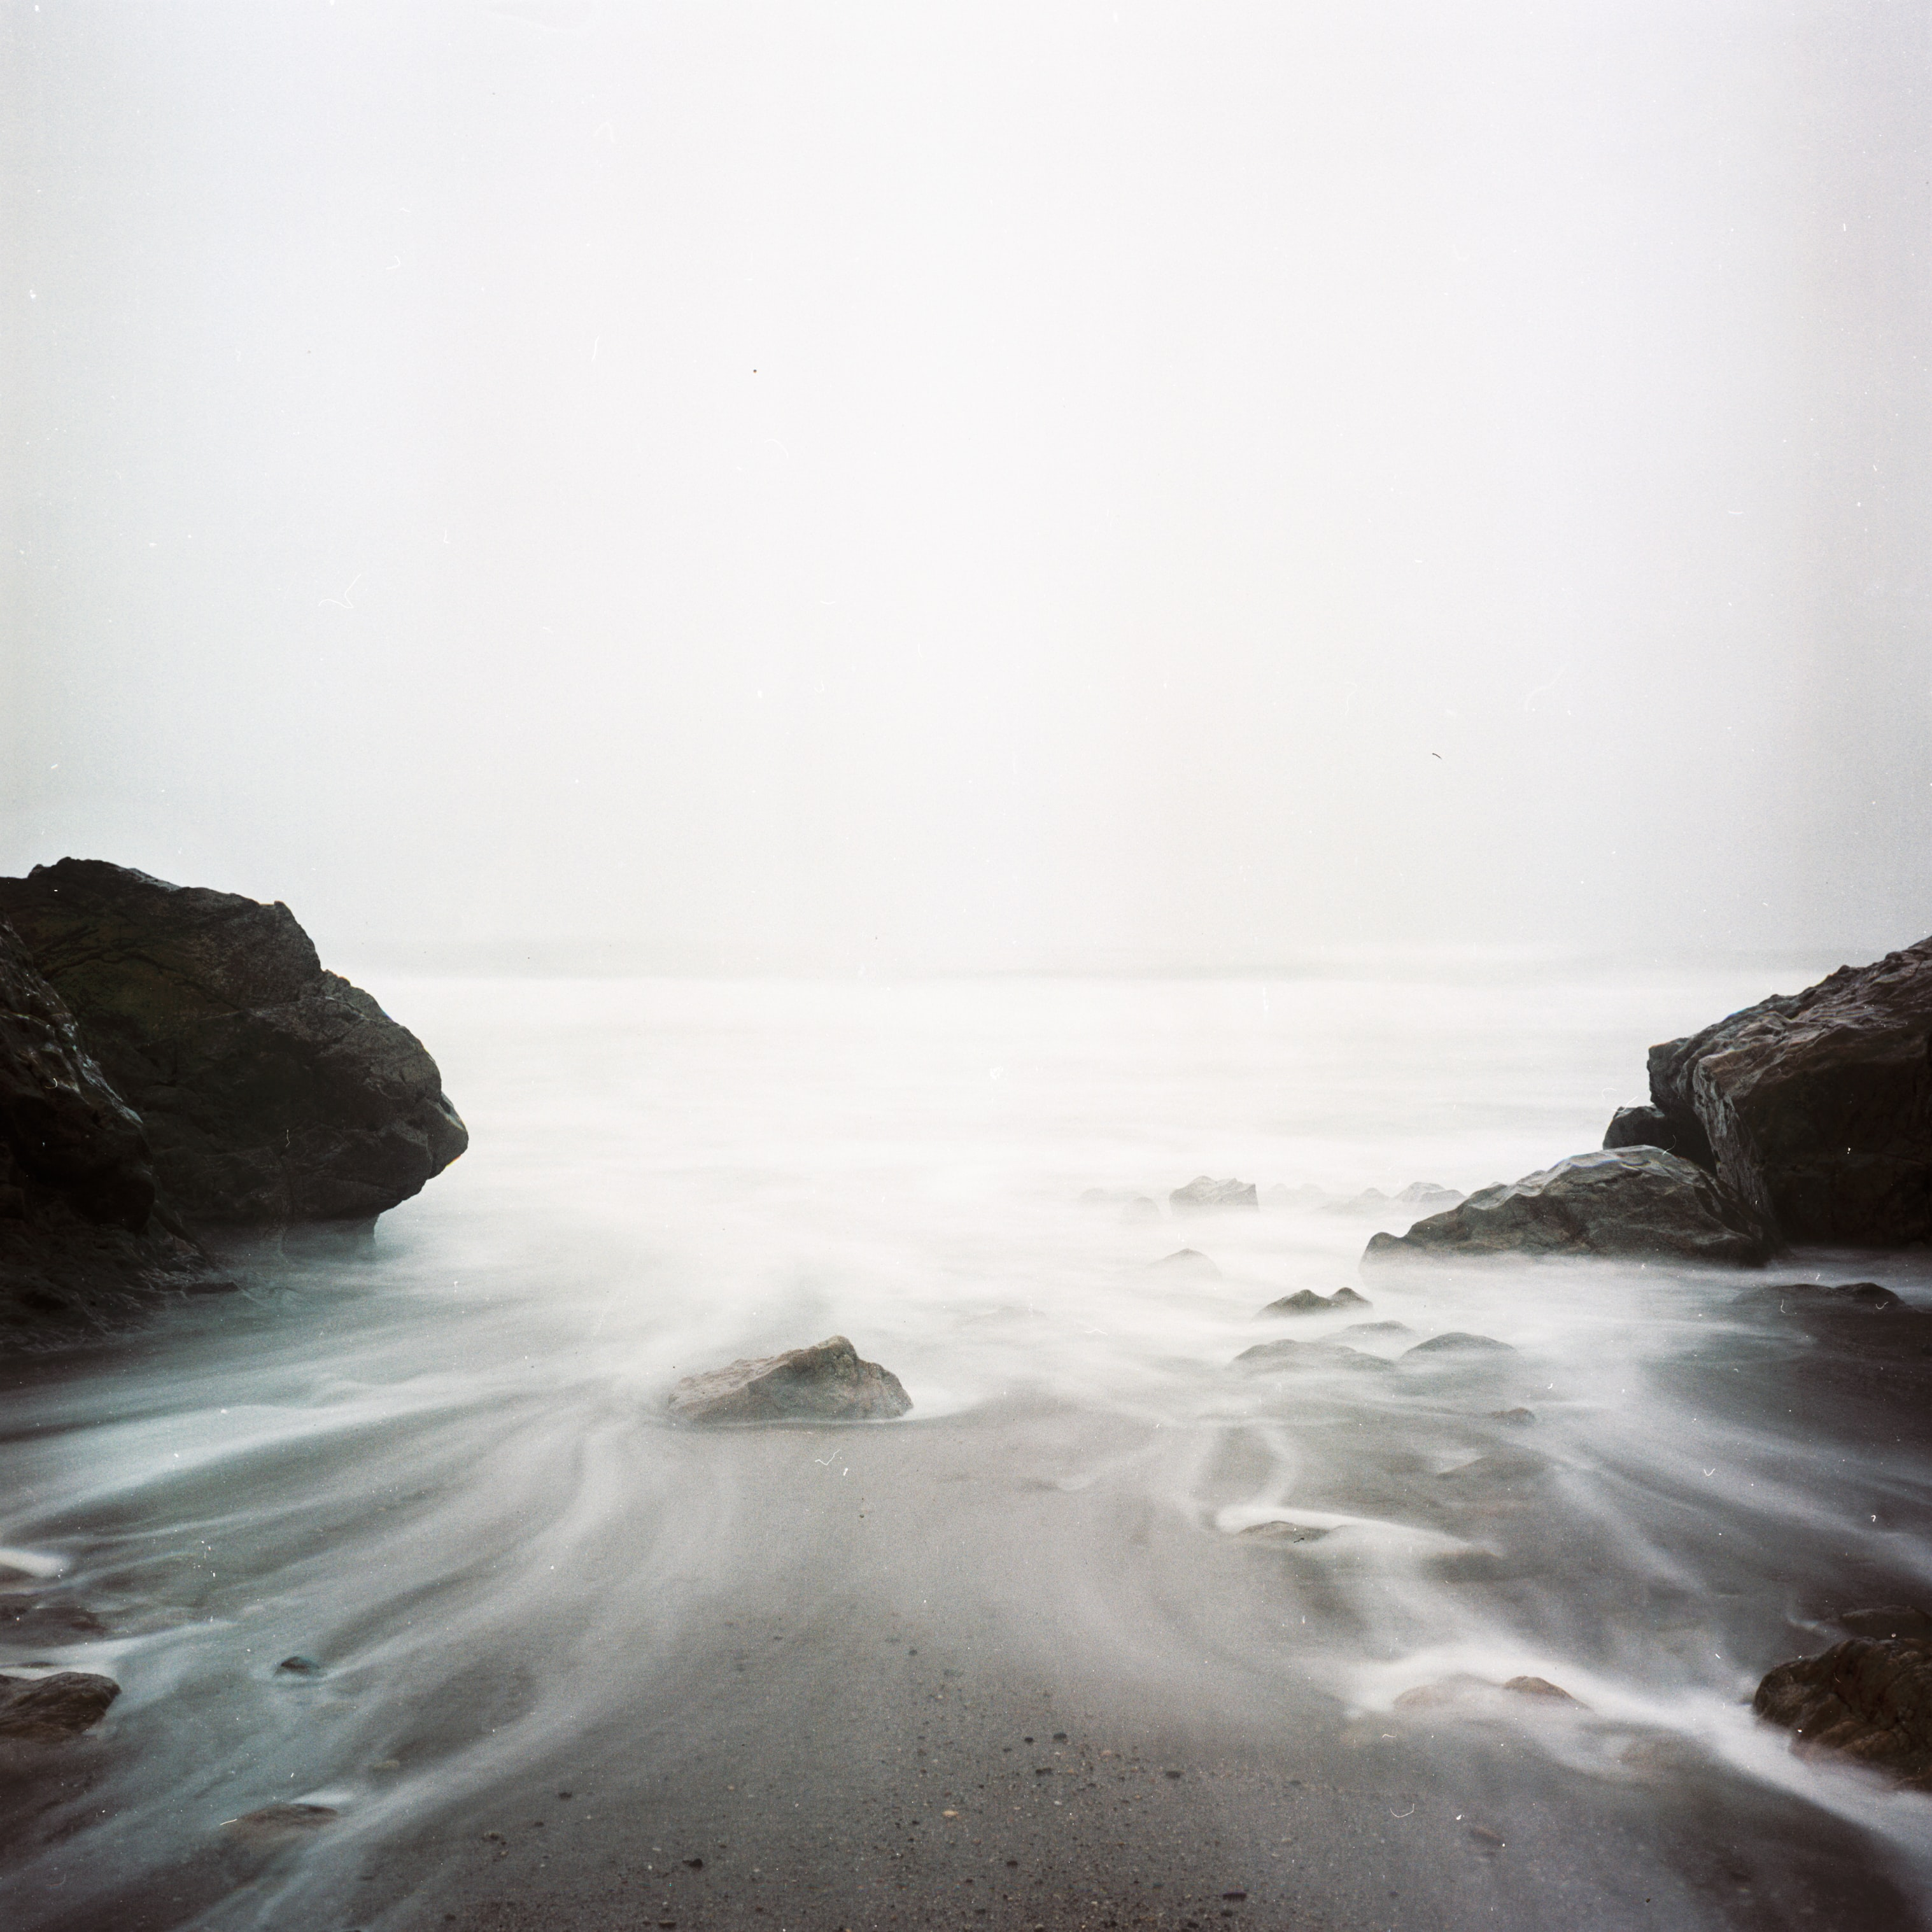 Long exposure photo of the ocean coming in the rocky bay